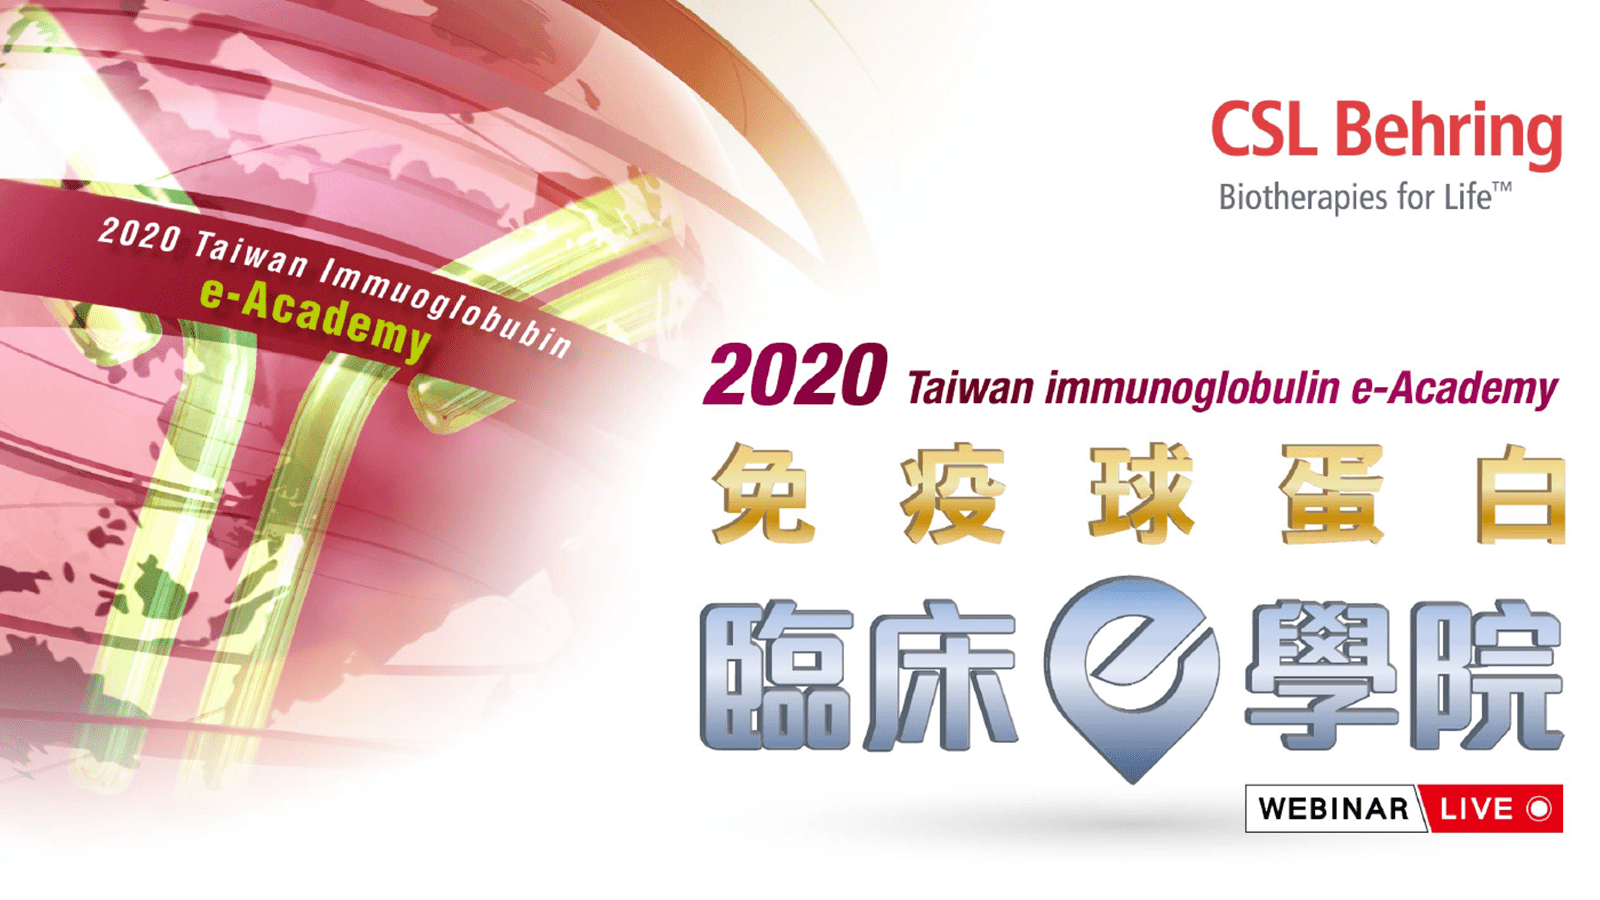 CSL Behring slide from an immunoglobulin webinar series in Taiwan